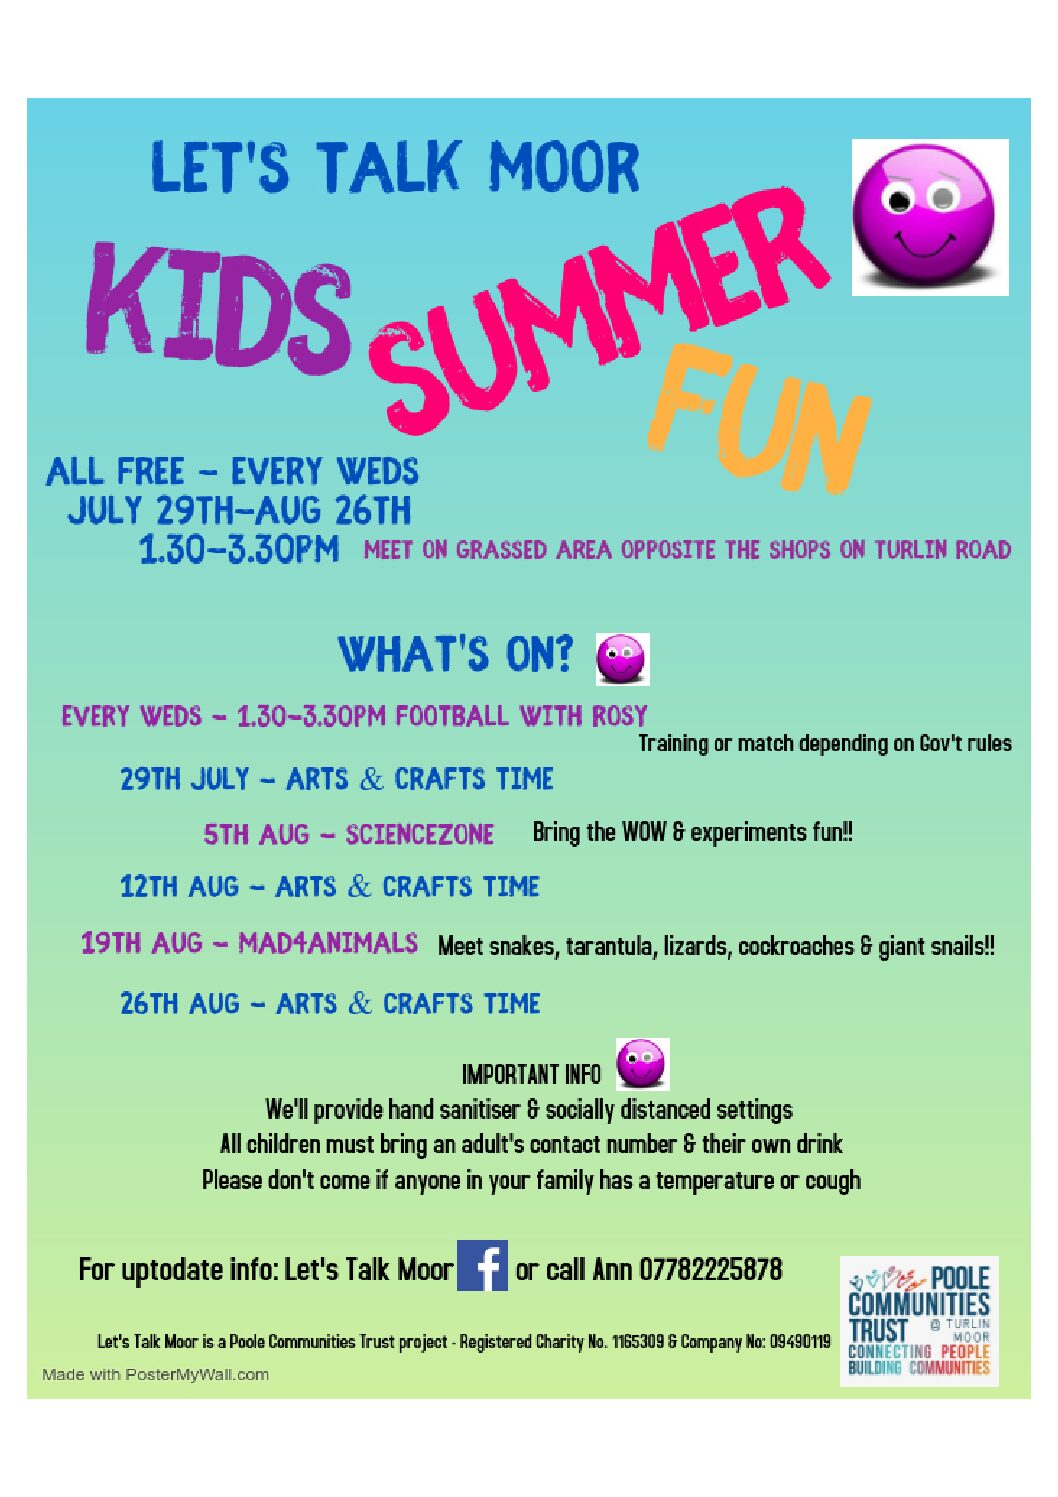 Let's Talk Moor Summer Kids Fun